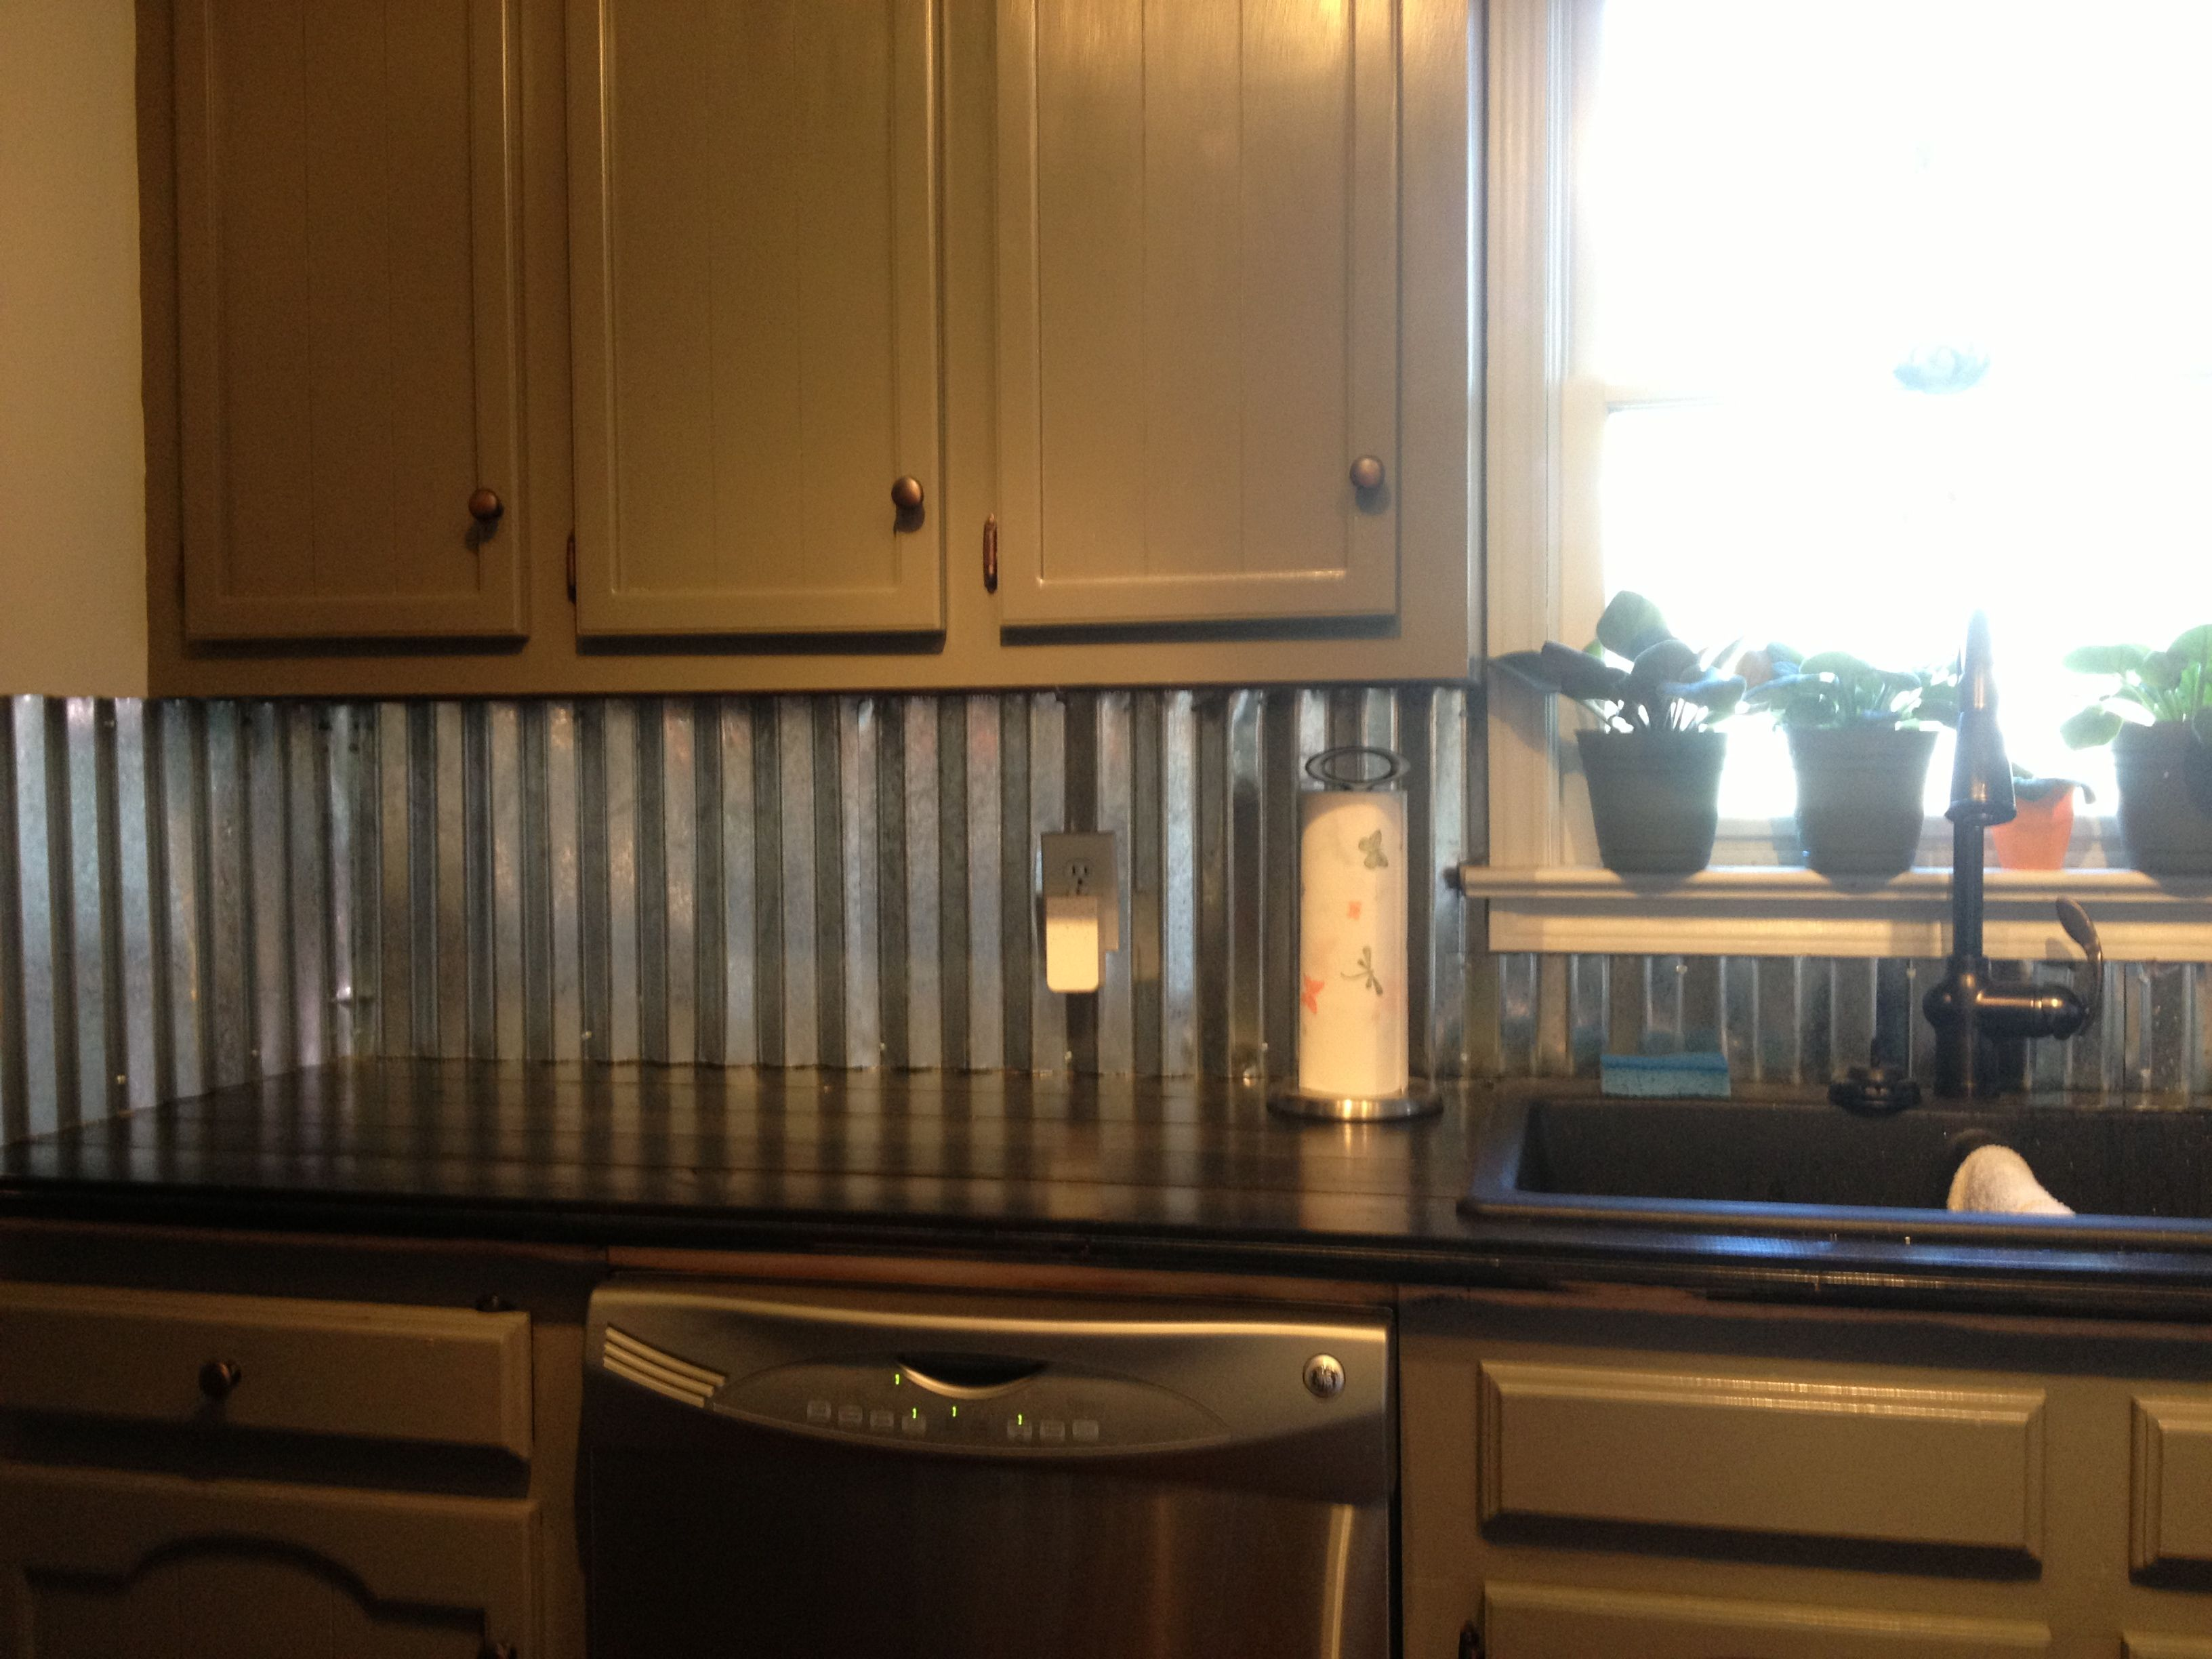 Kitchen Cabinet Pantries Corrugated Metal Backsplash Dream Home Pinterest